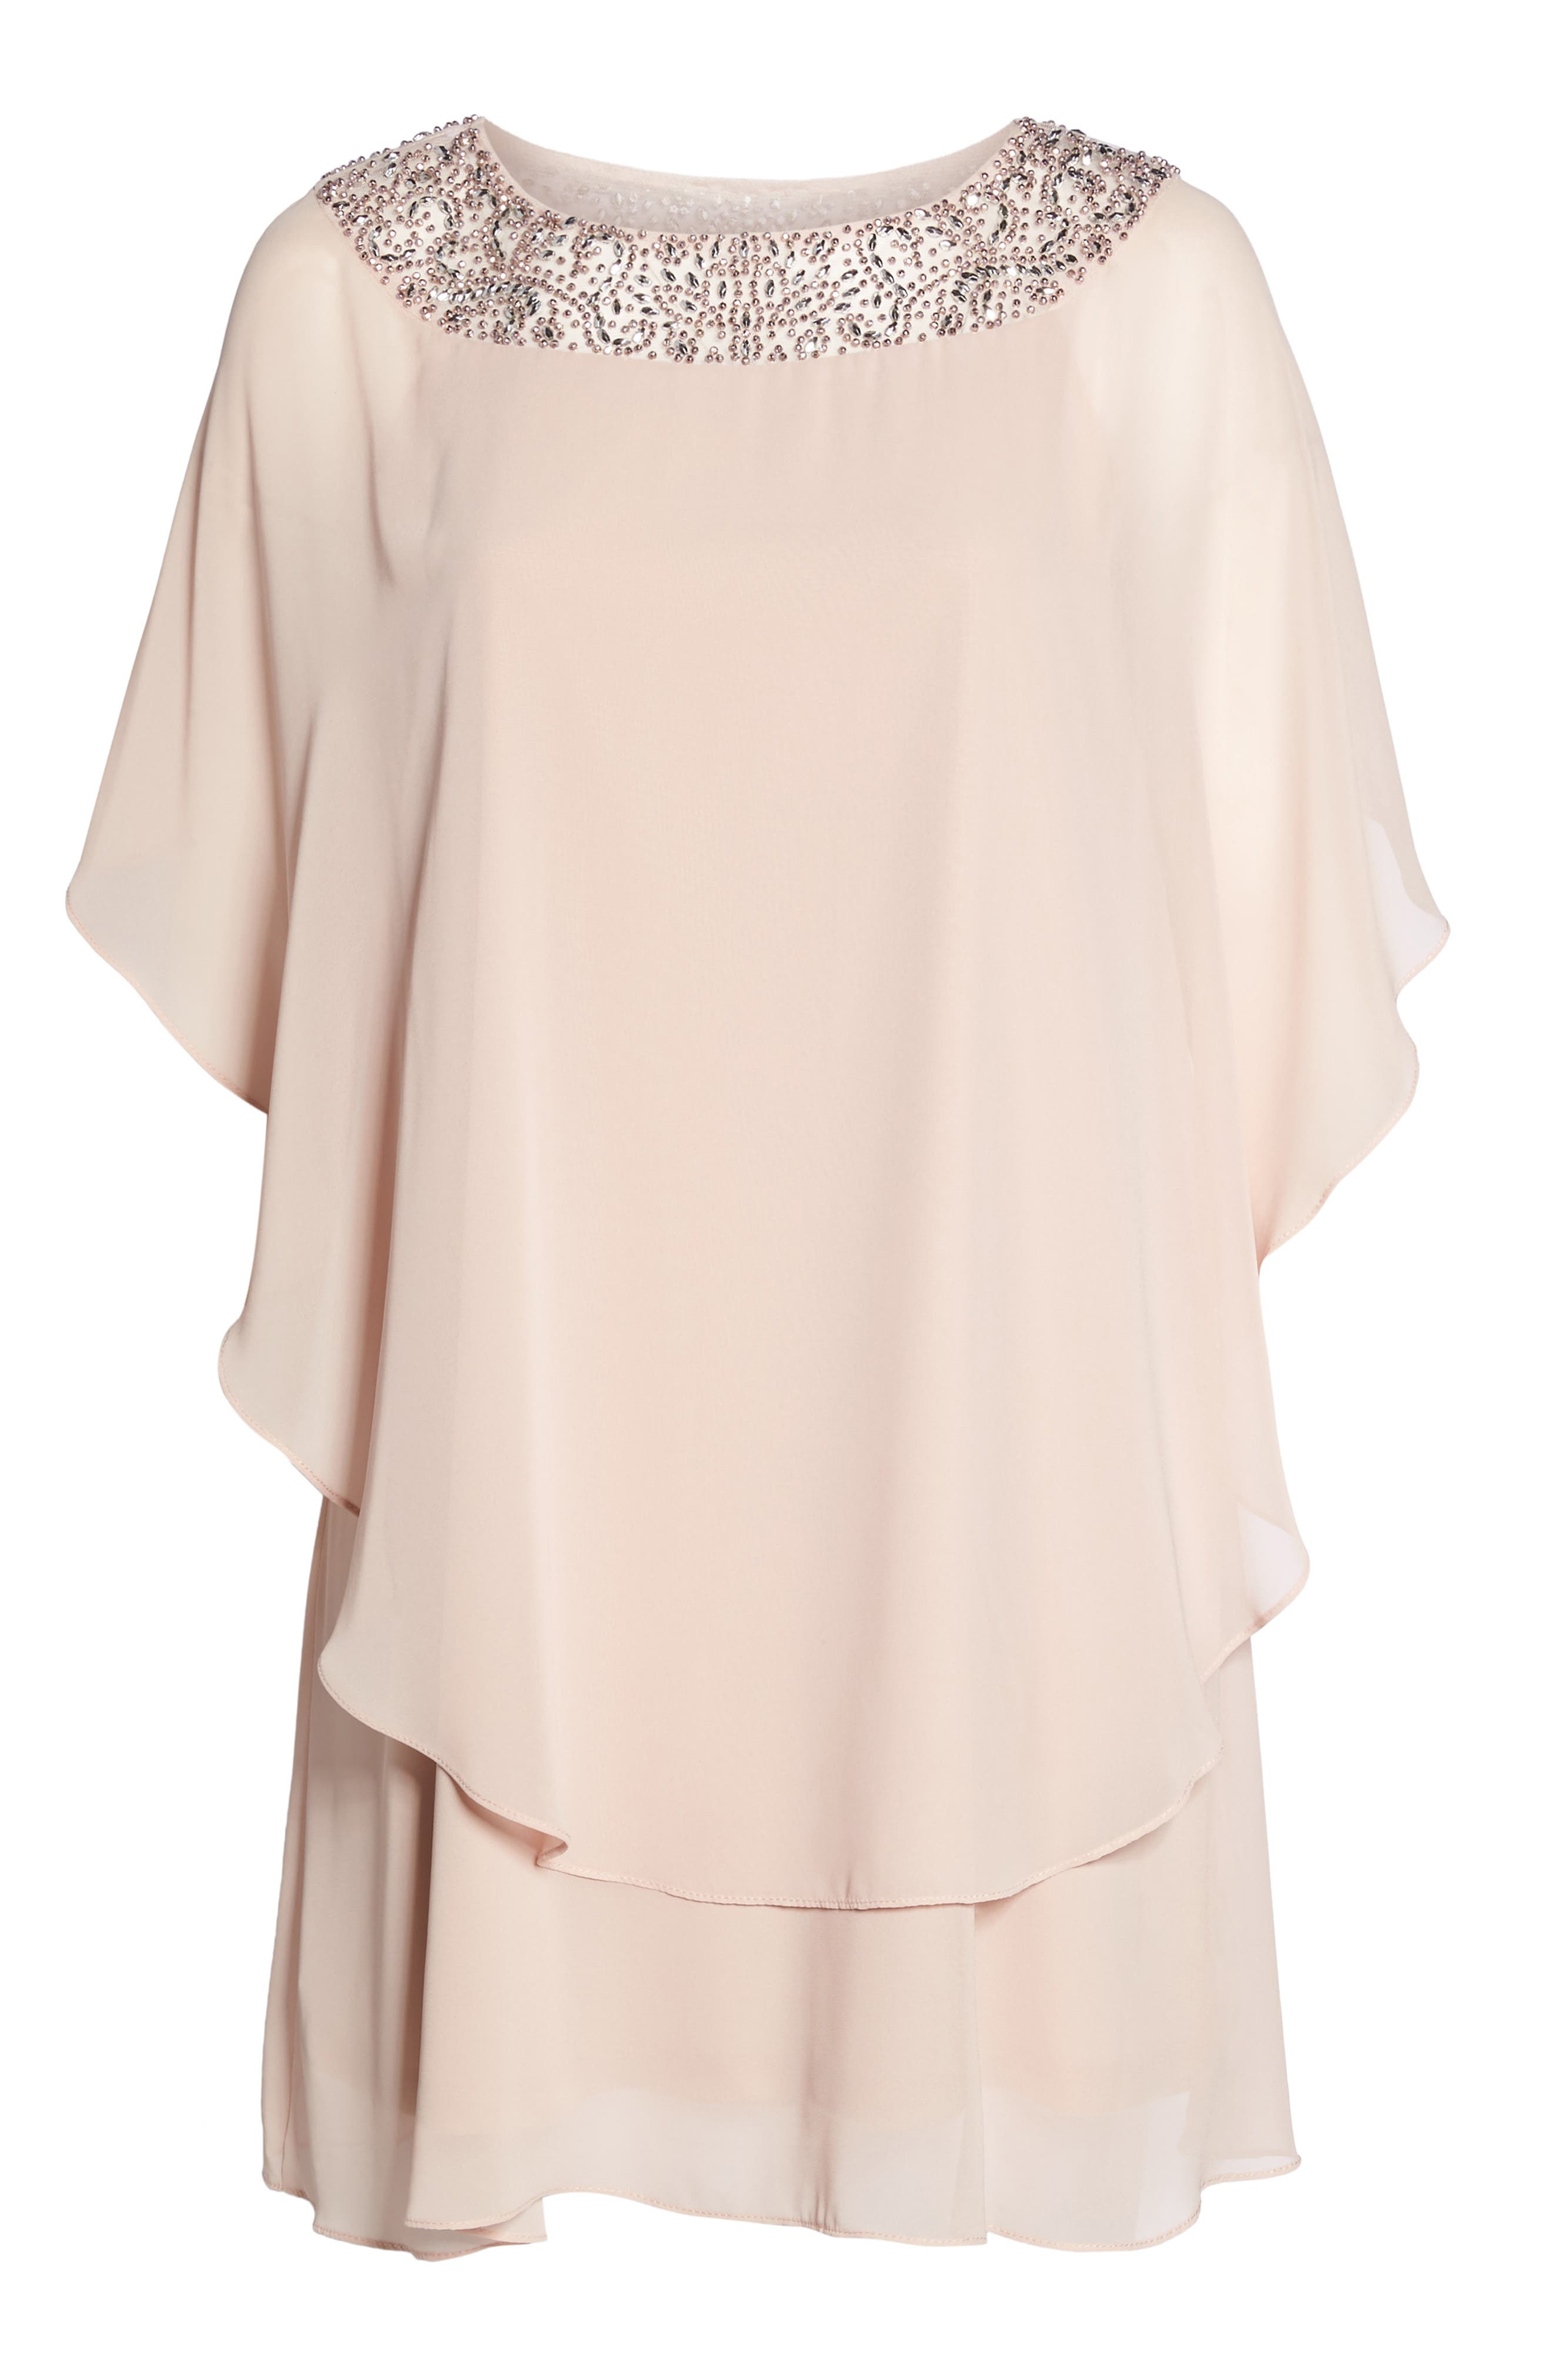 Beaded Neck Chiffon Overlay Dress,                             Alternate thumbnail 6, color,                             Blush/ Silver